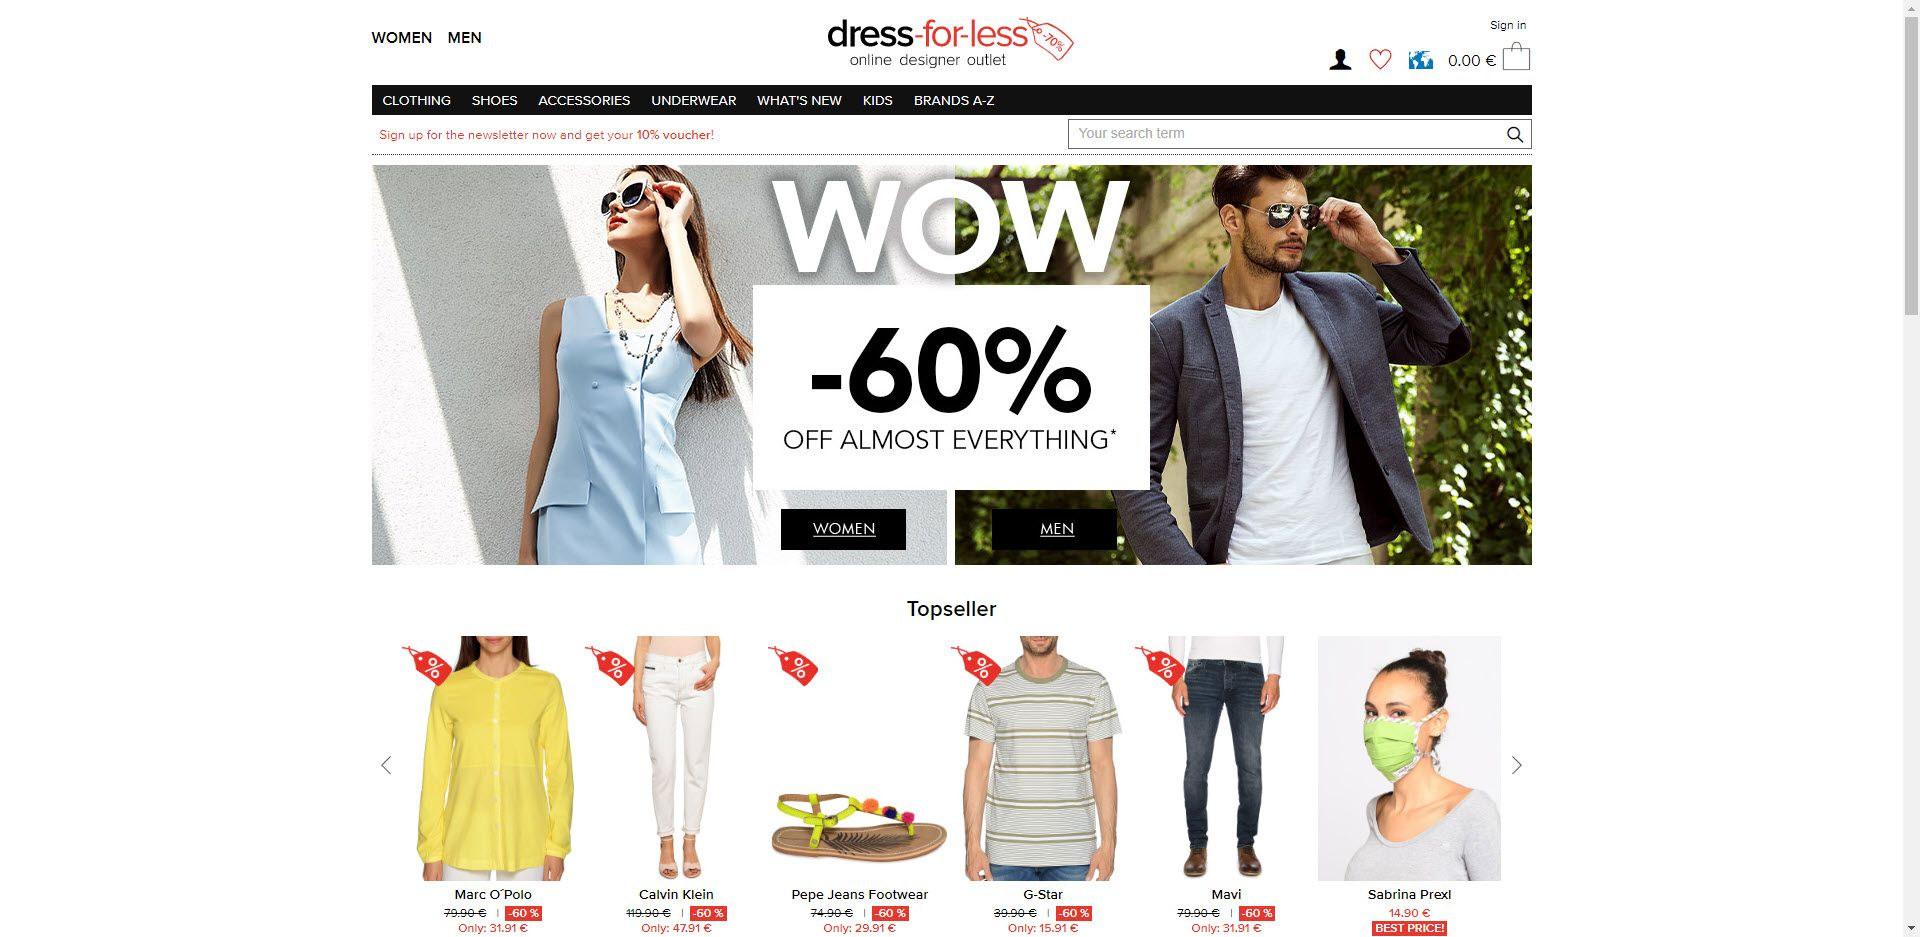 Fashion Designer Affiliate Programs - dress for less